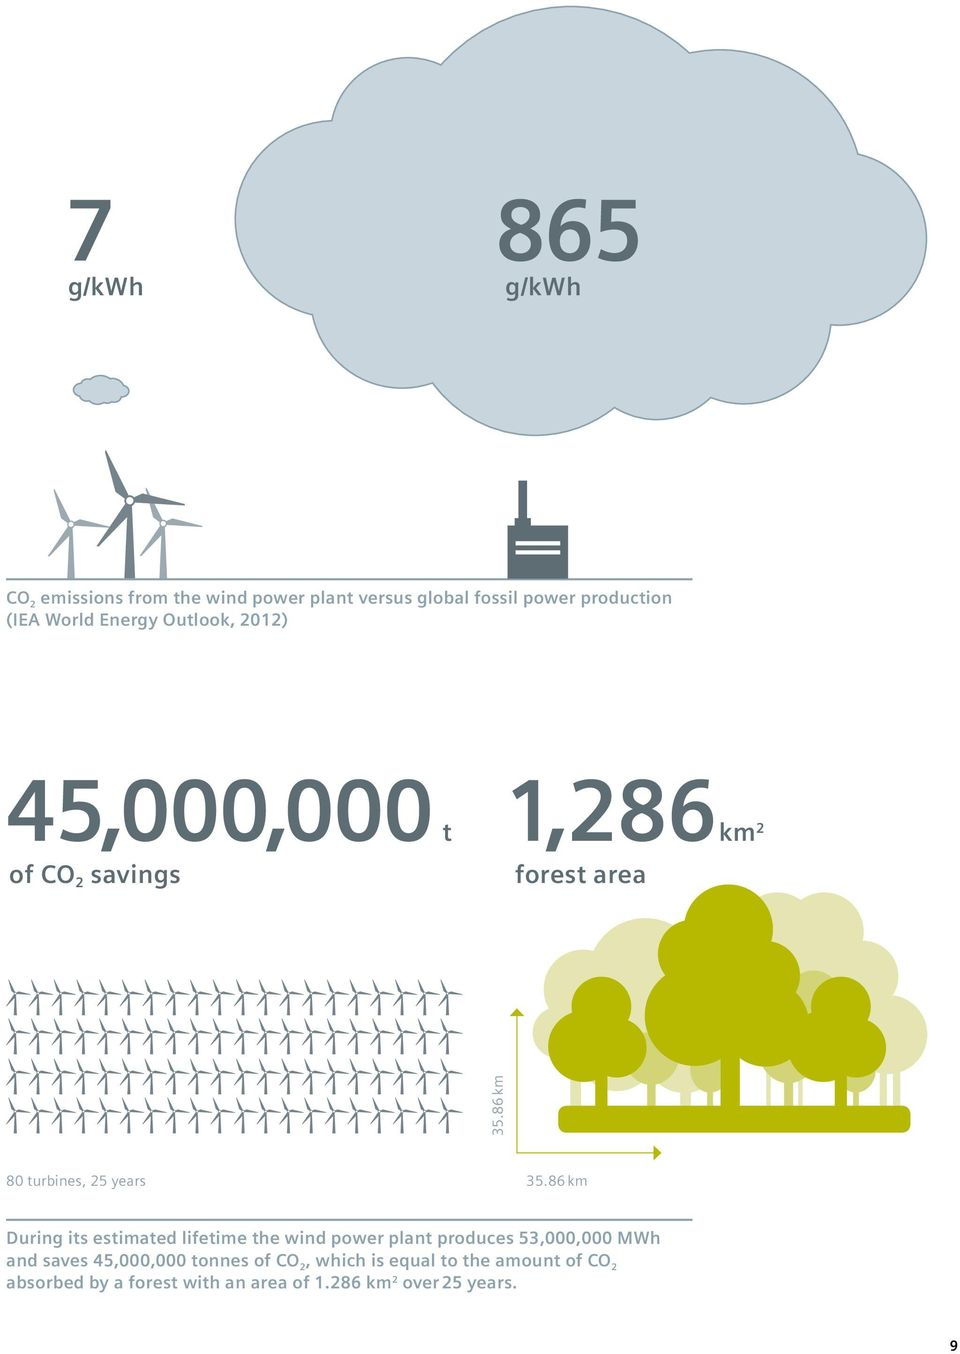 86 km During its estimated lifetime the wind power plant produces 53,000,000 MWh and saves 45,000,000 tonnes